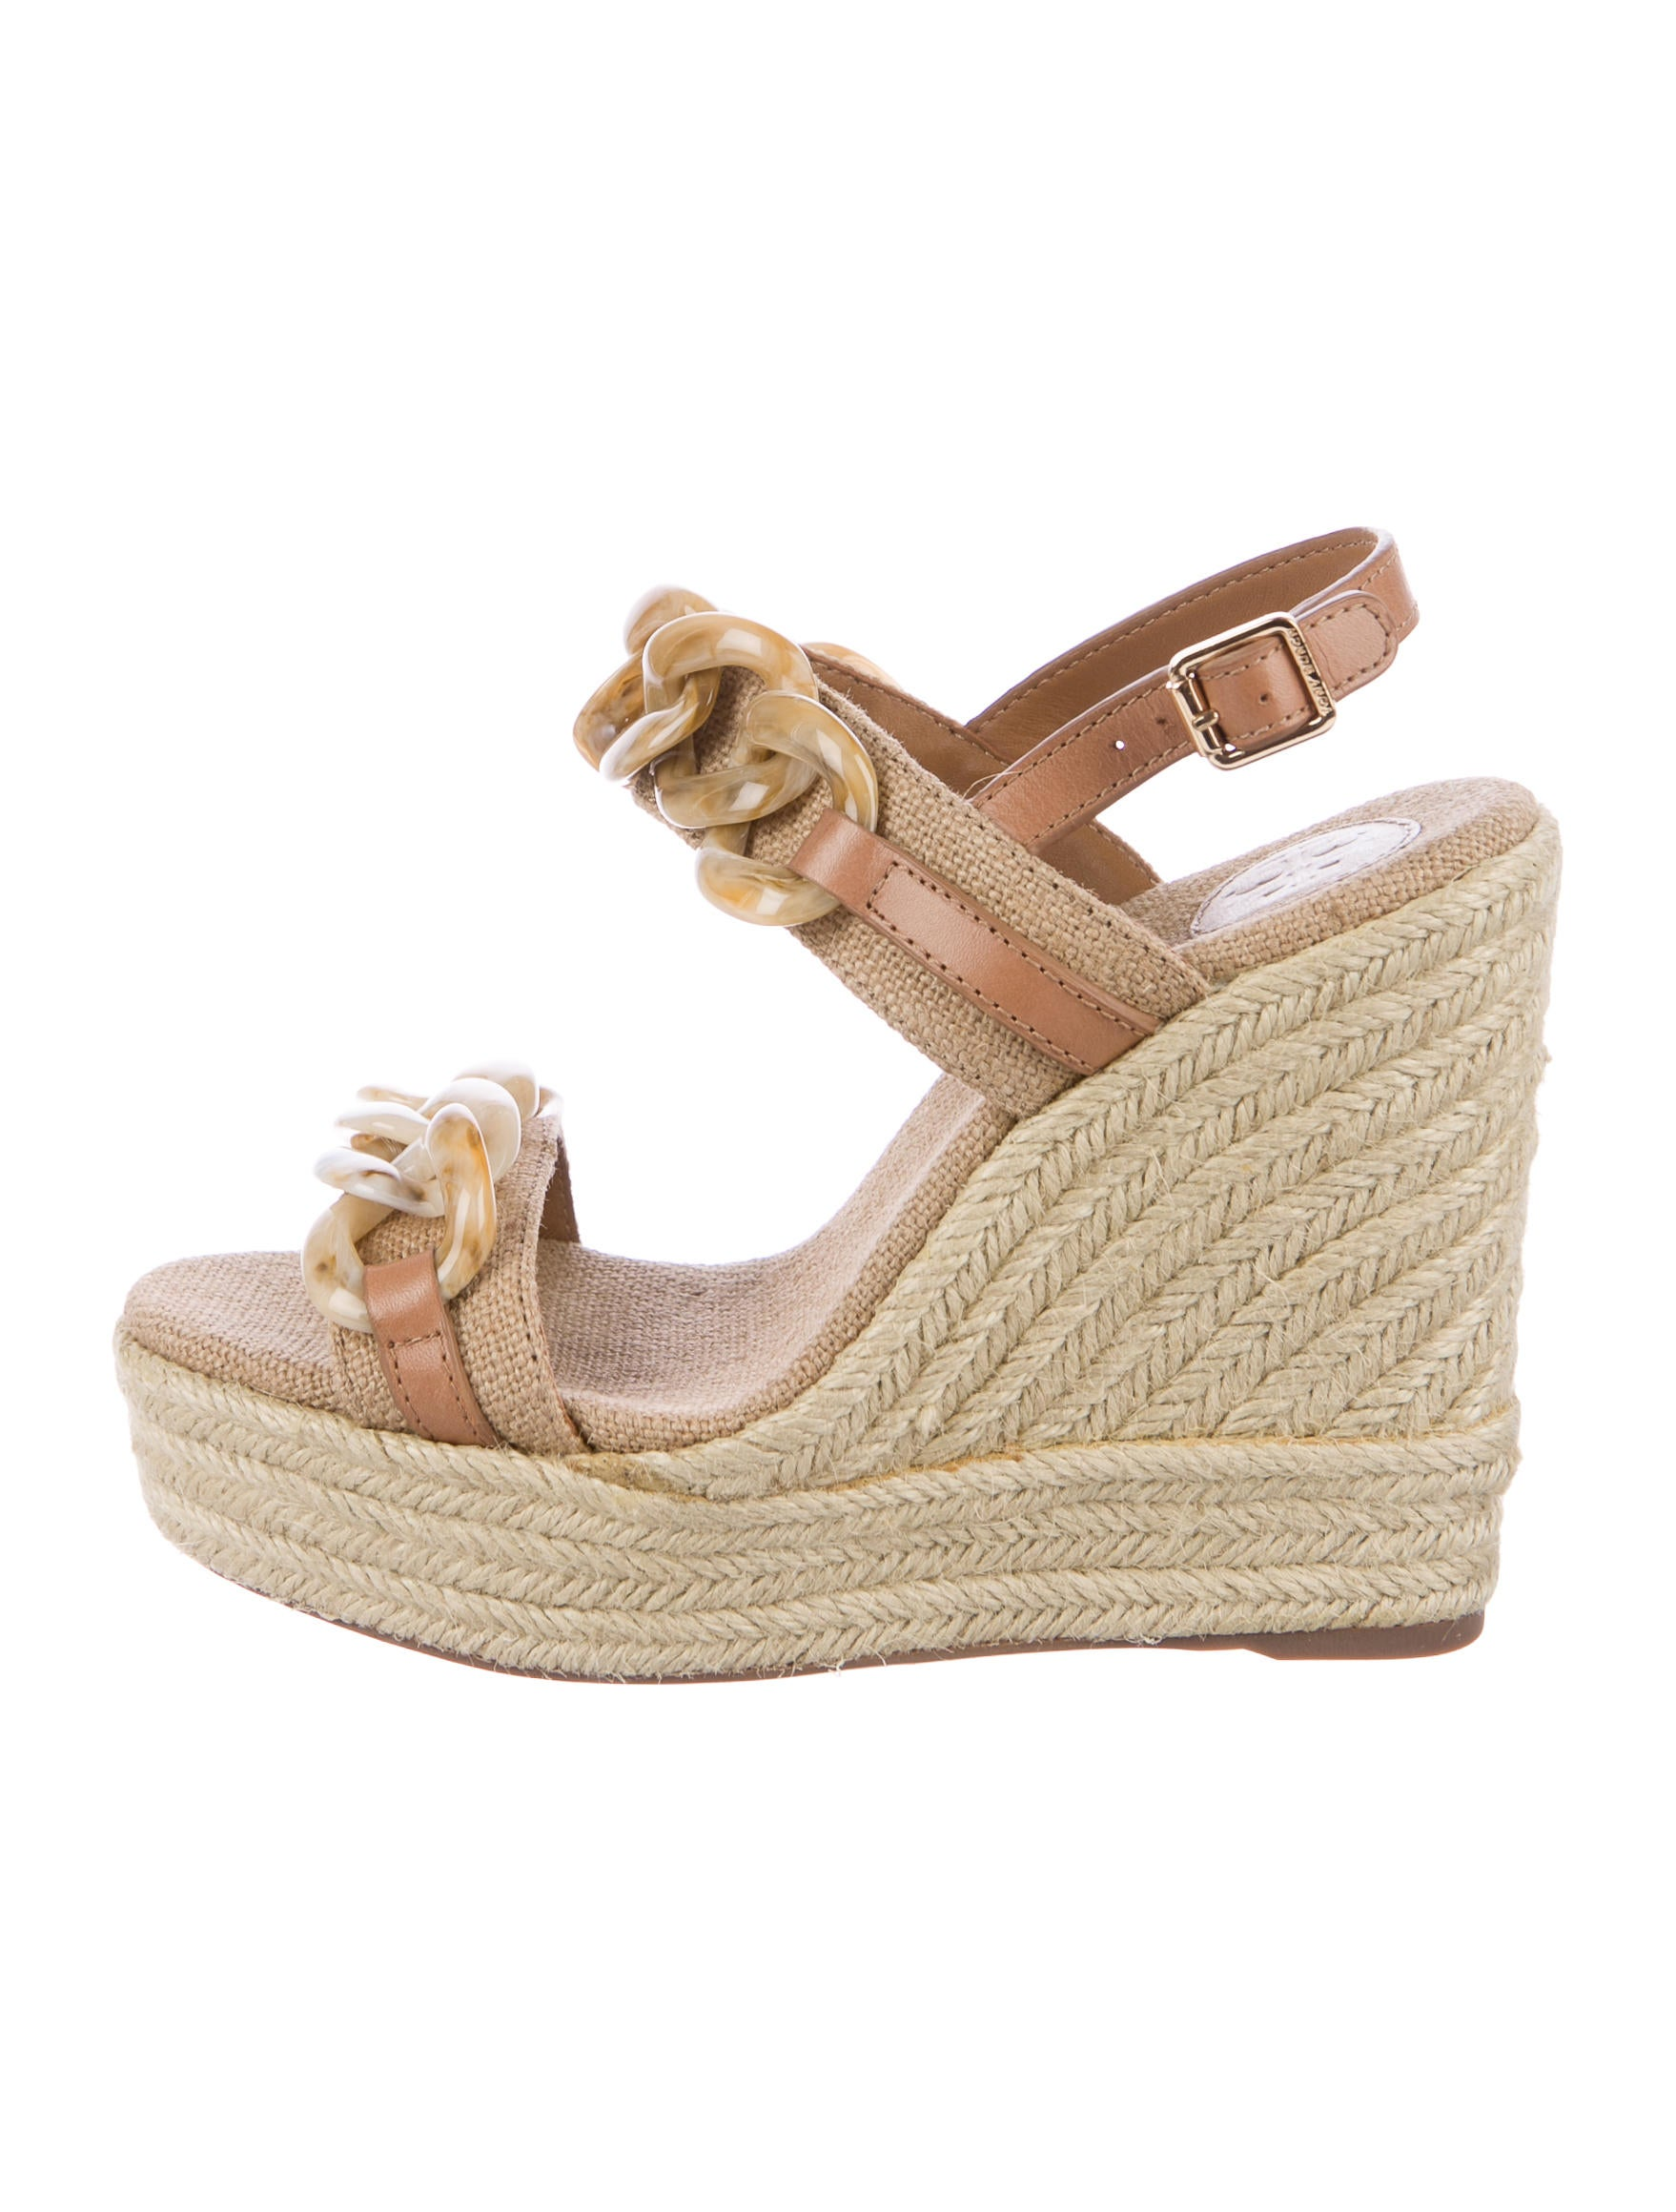 9d74957fcf422 Tory Burch Alta Espadrille Wedges - Shoes - WTO110687